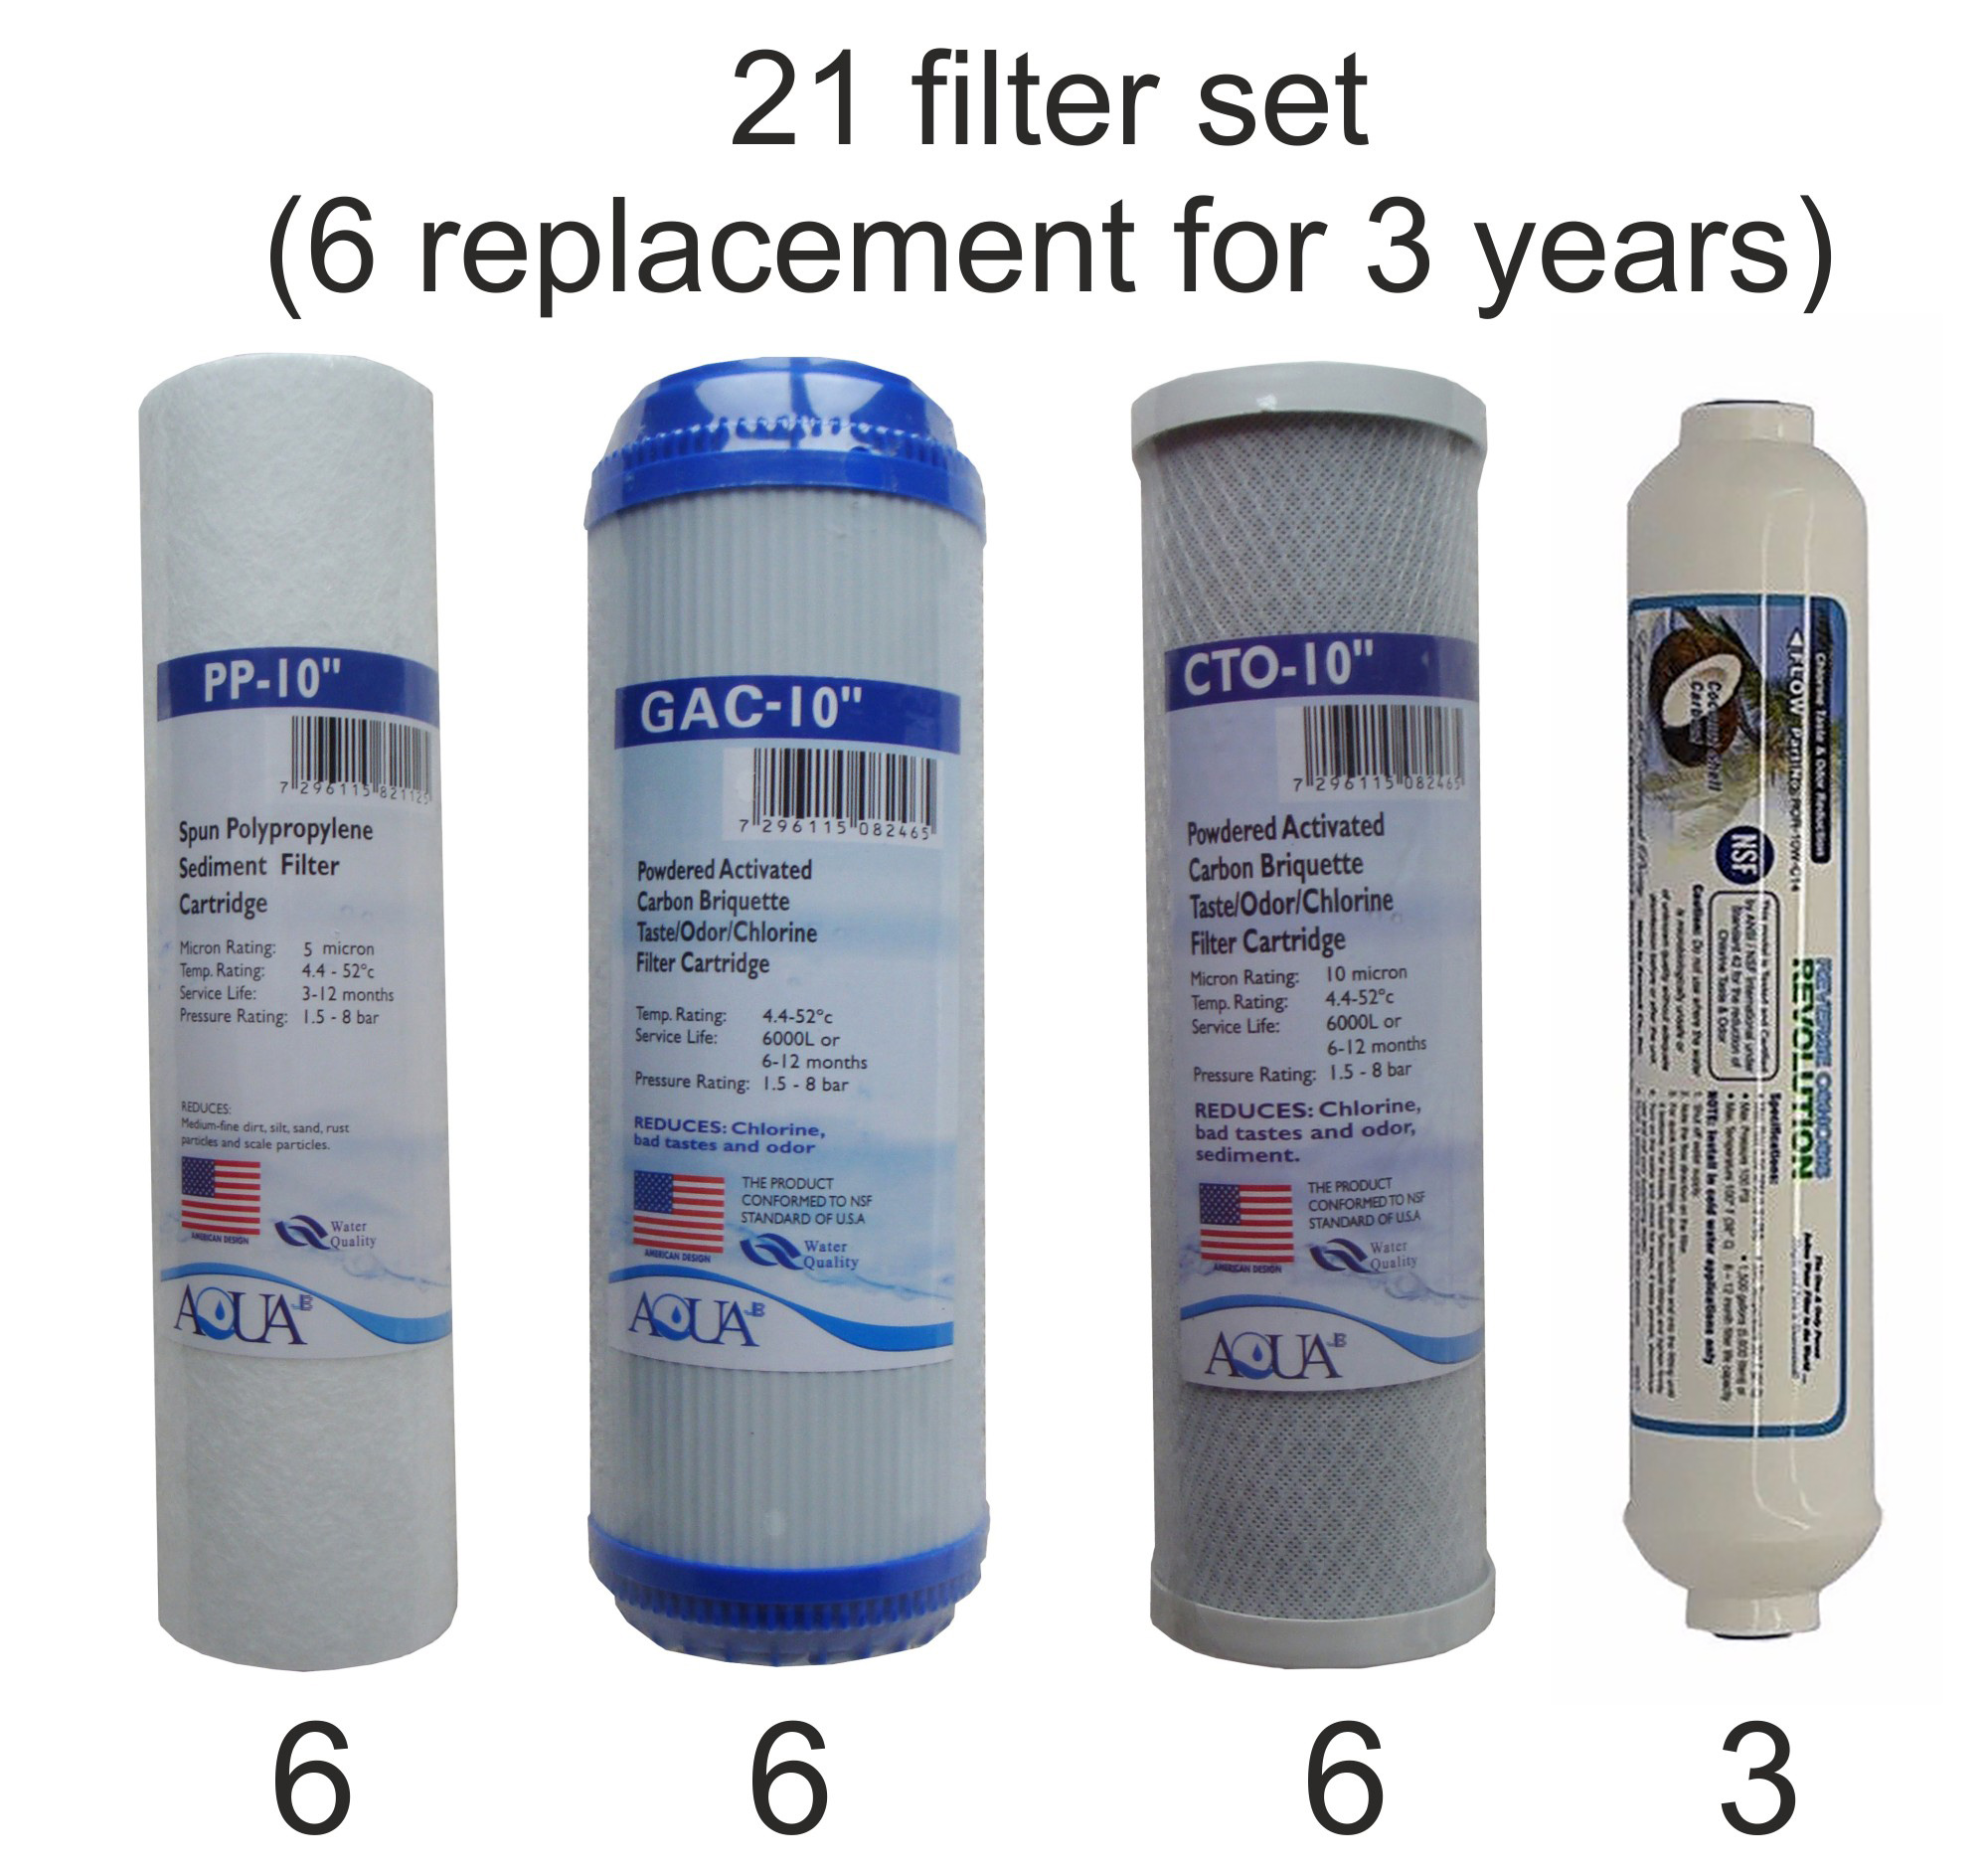 Universal Reverse Osmosis RO Replacement Set of 21 filters for 3-year supply